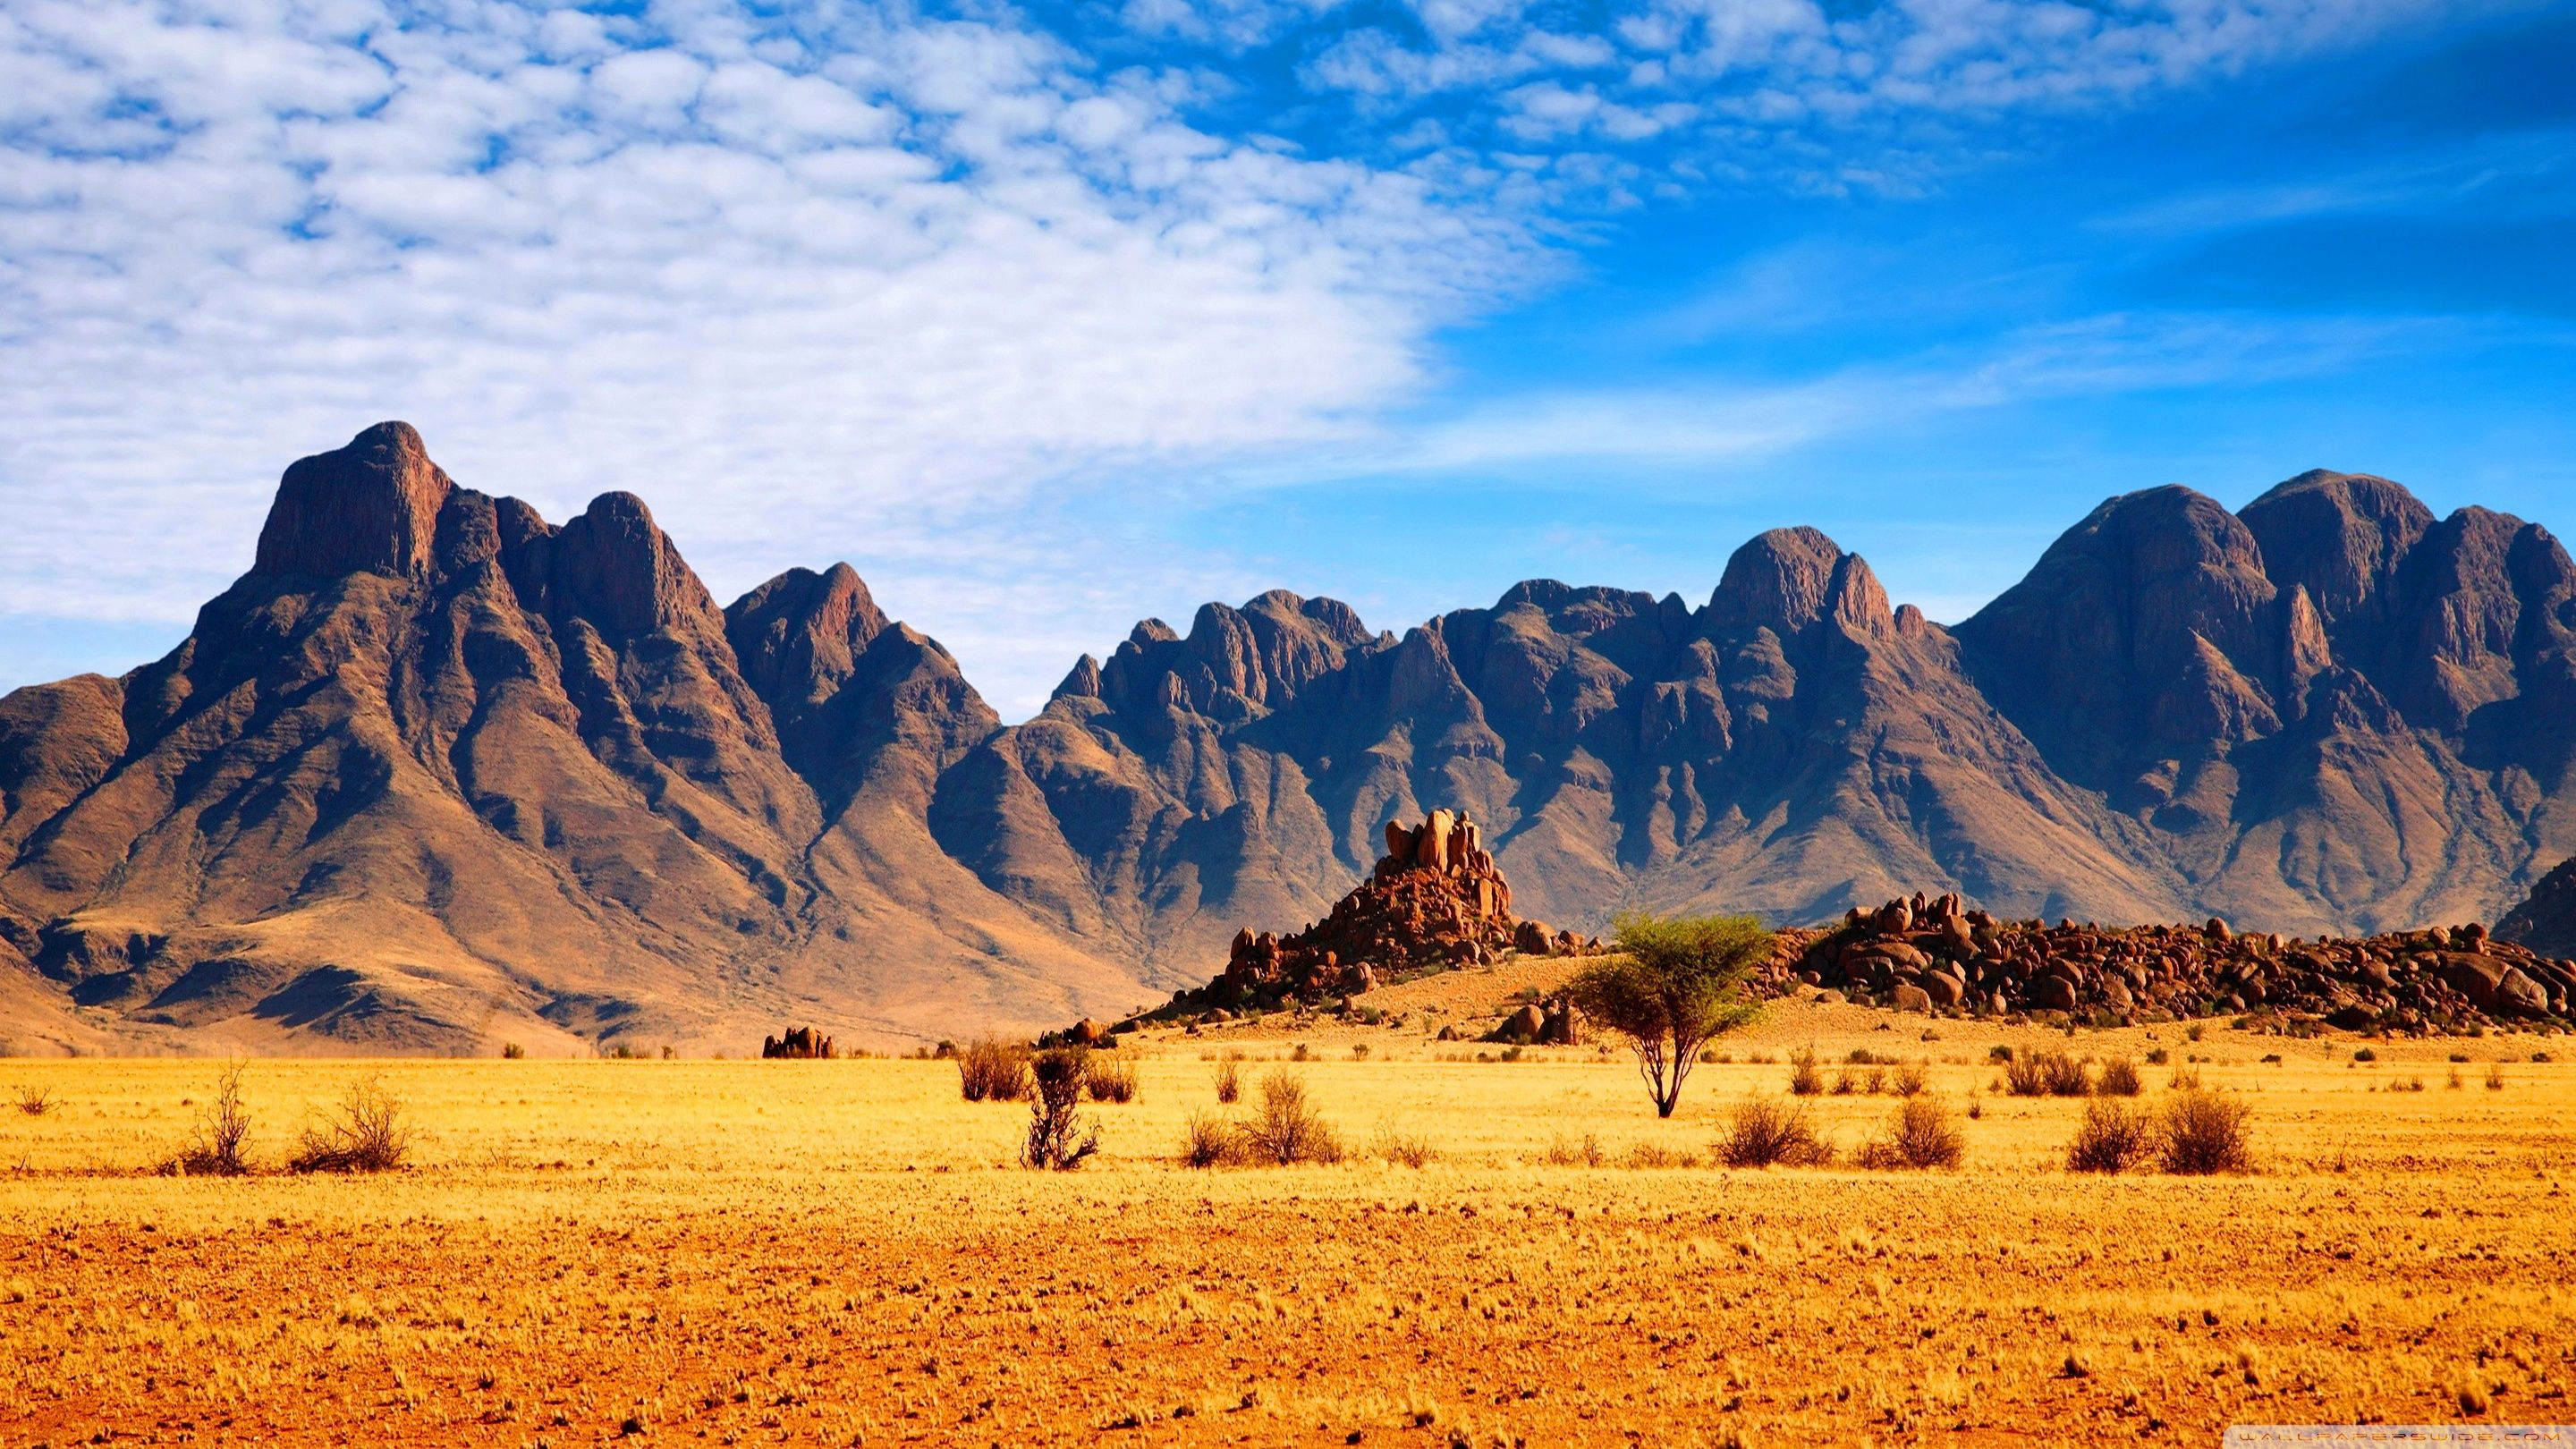 Africa 4K Wallpapers - Top Free Africa 4K Backgrounds ...